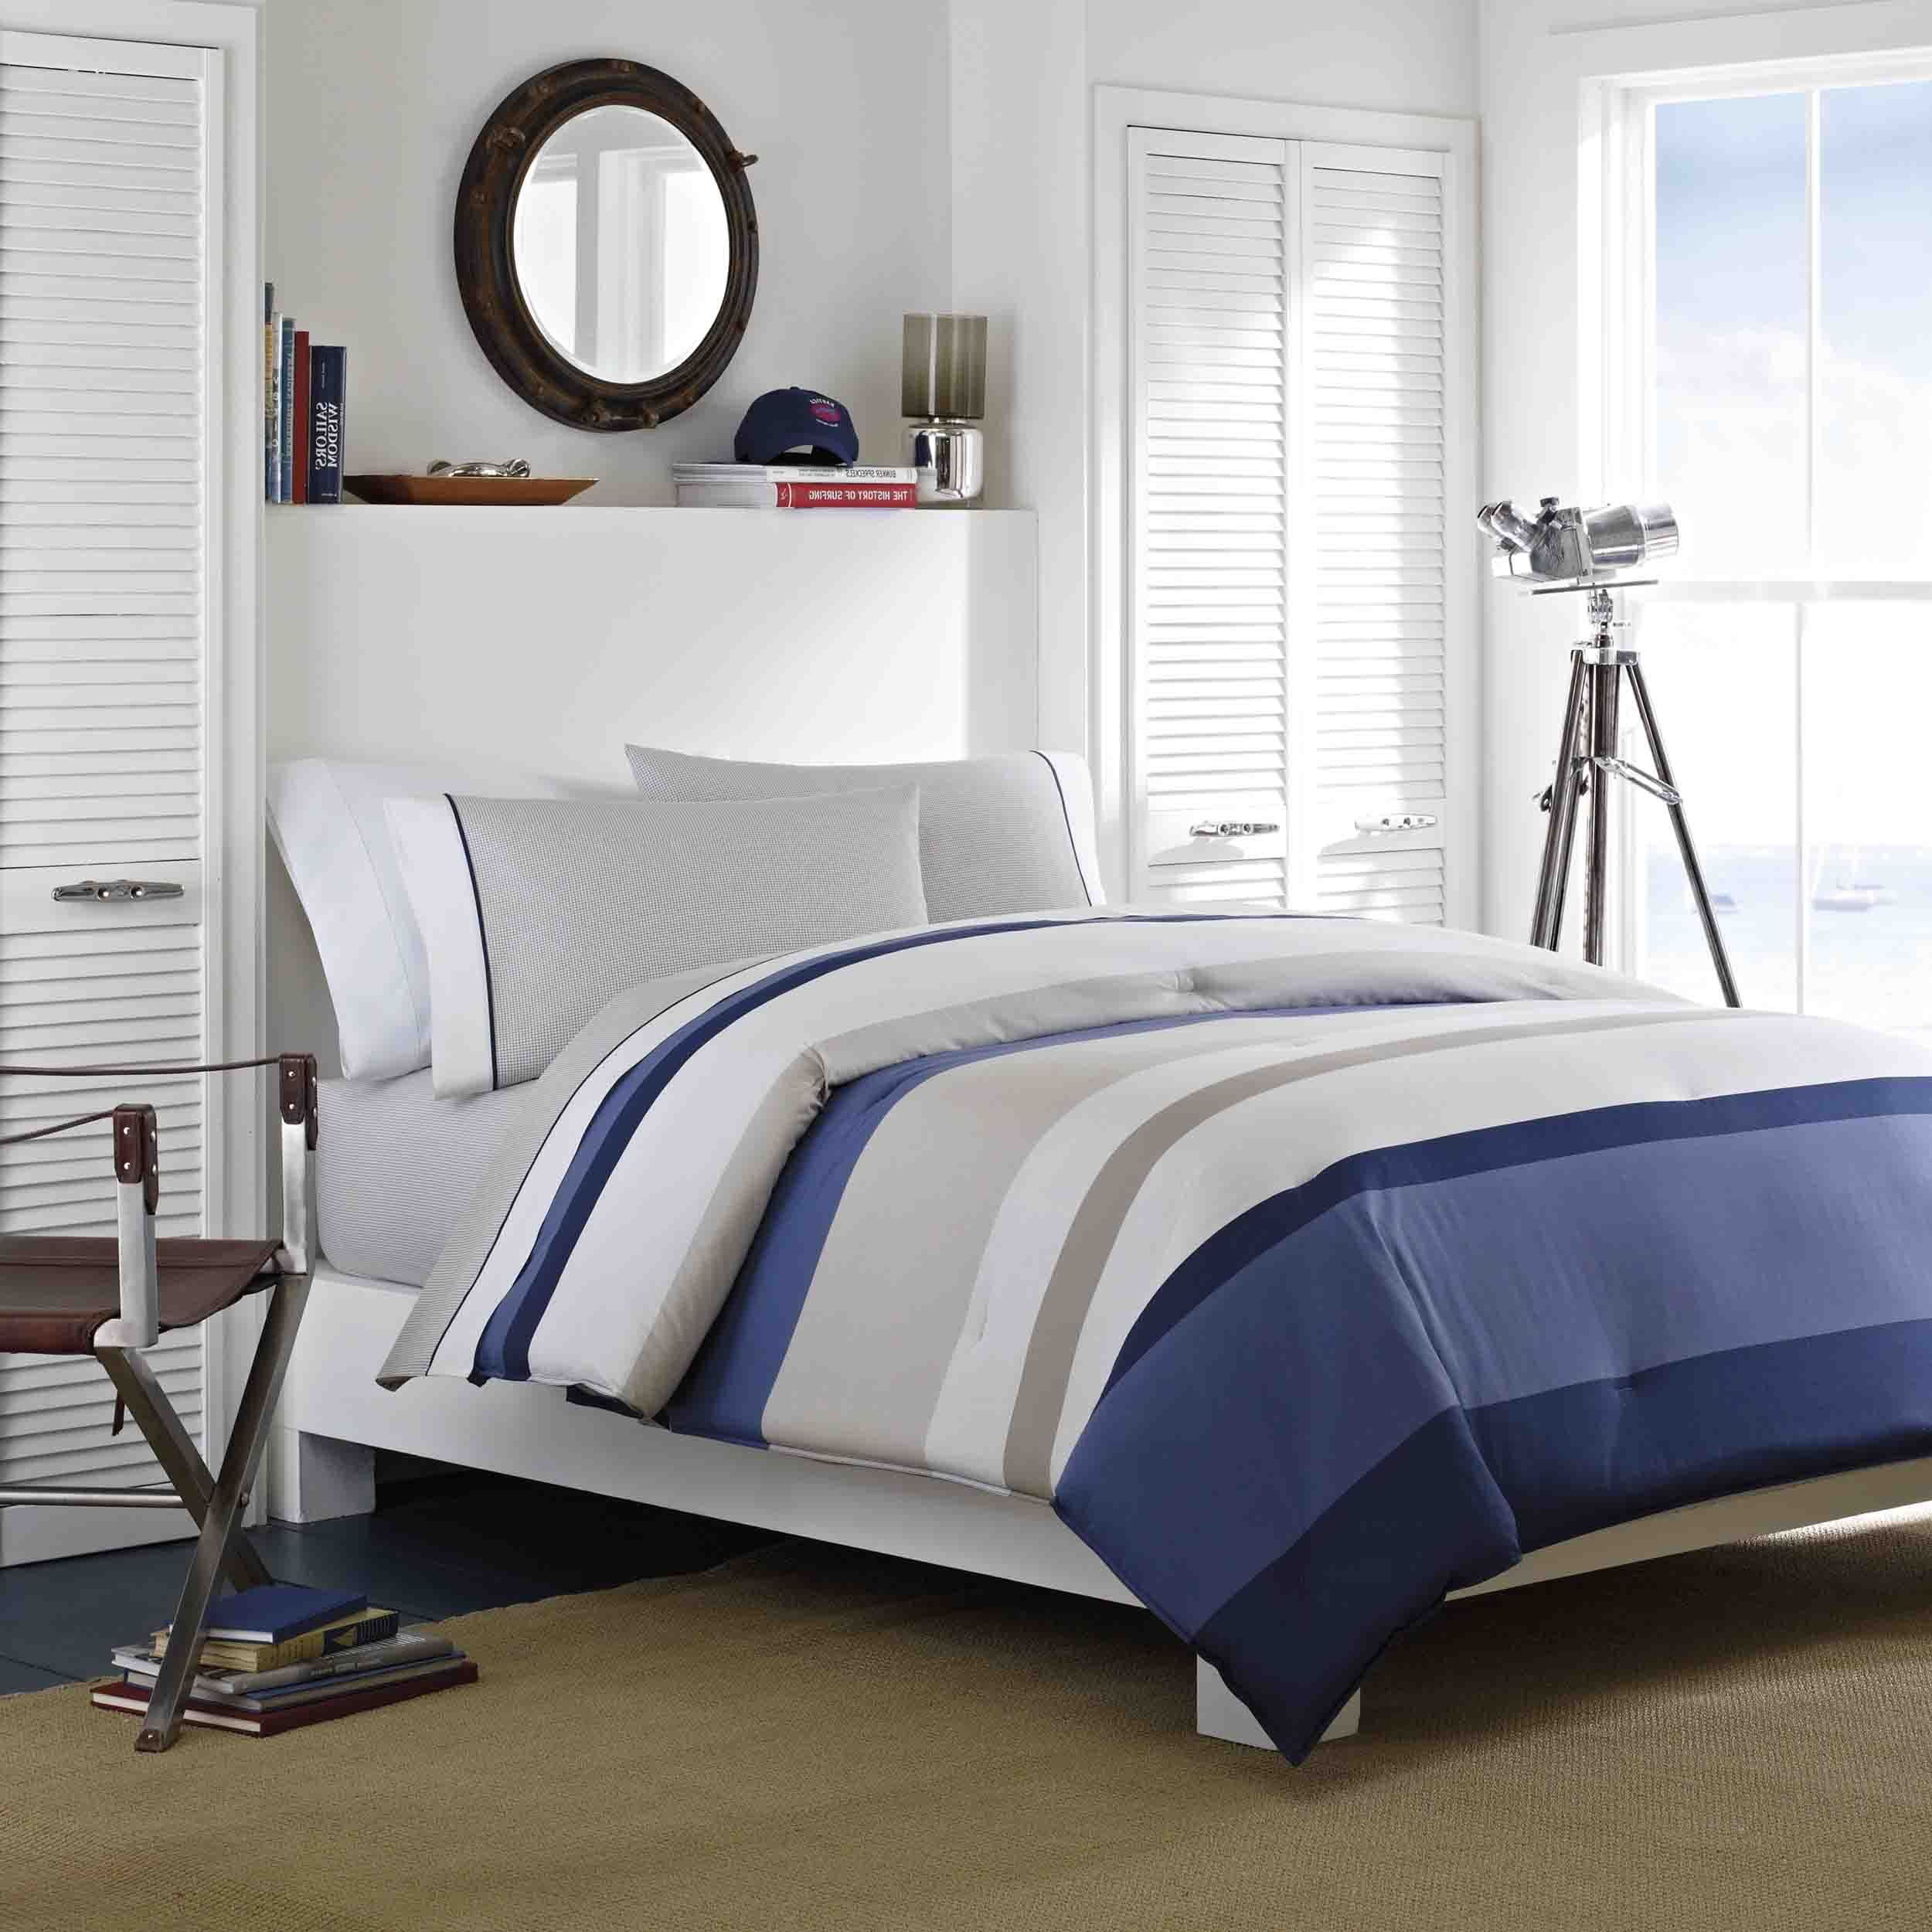 nautica set soft beyond king cotton margate european color slim comforter stripe grey bedroom pattern with sham throw pillow nautical comforters bath palette chevron bedding bed and style